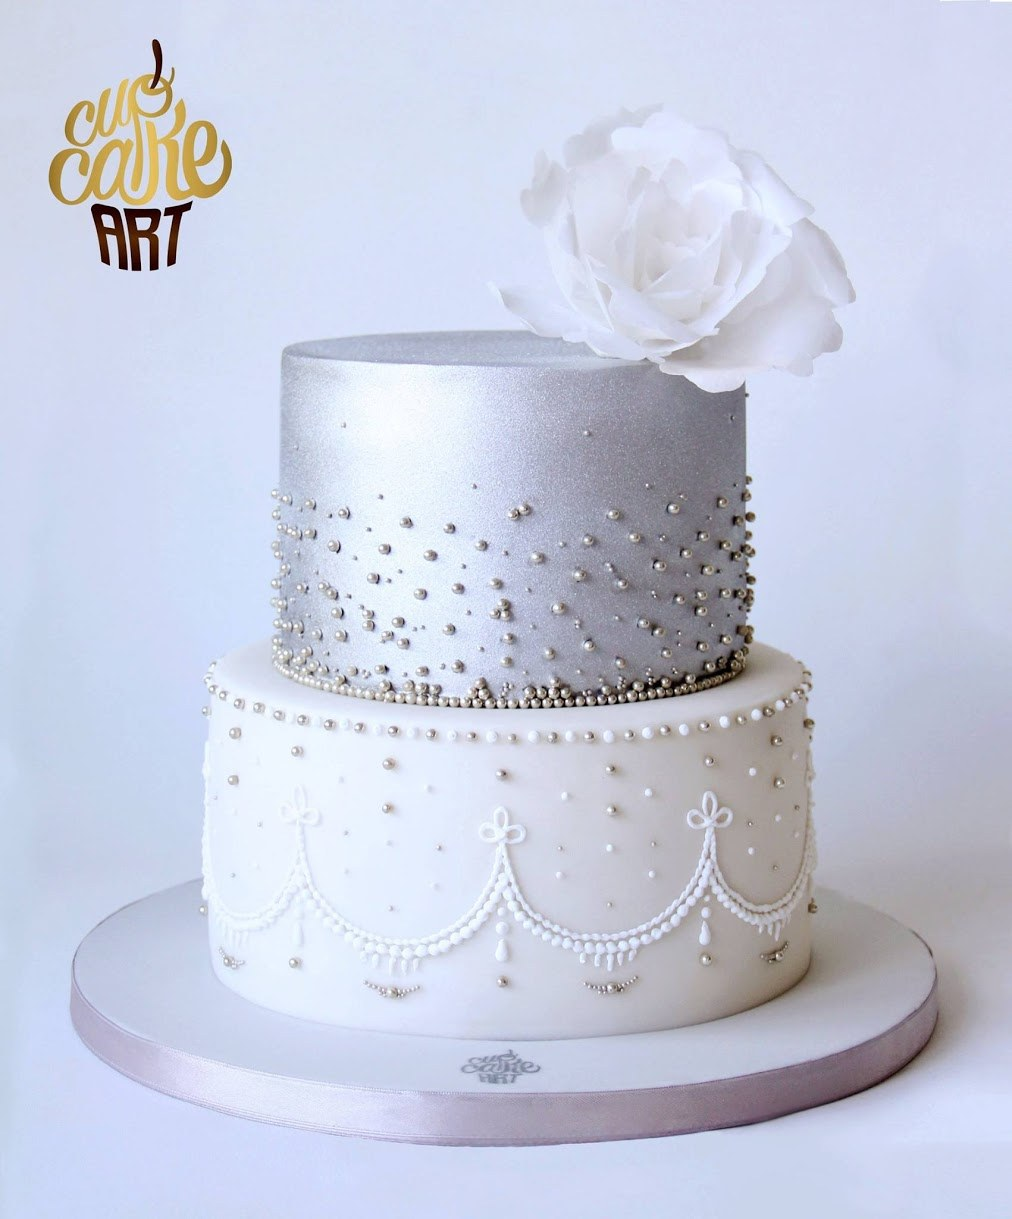 Metallic Silver and white fondant wedding cake